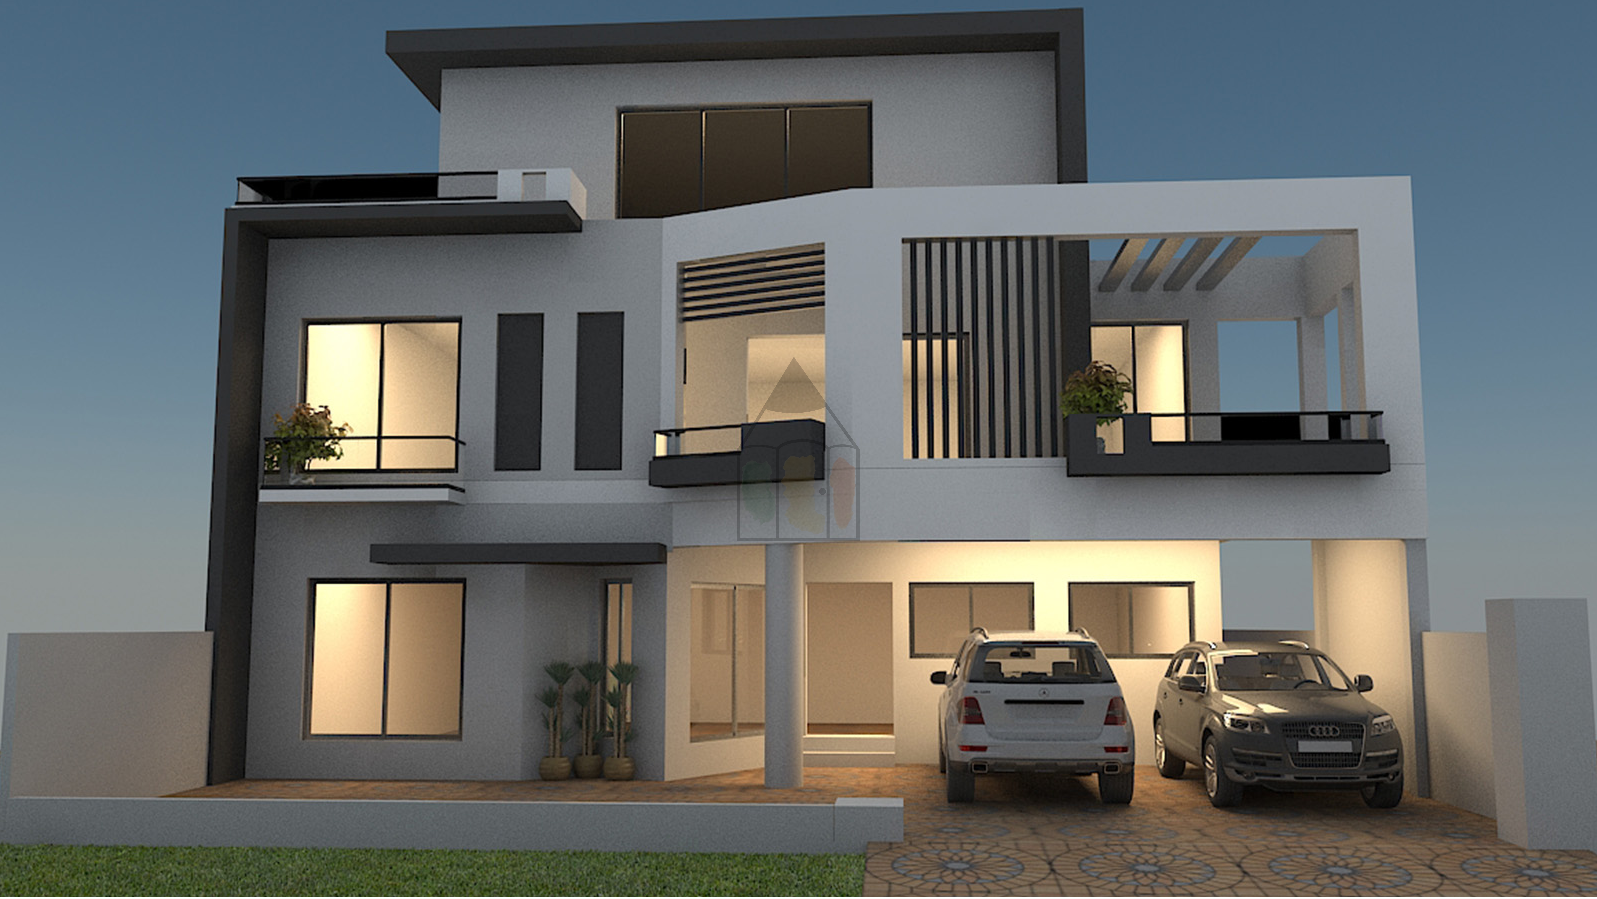 12 marla house has complete layout plan with front elevation is a double storey house having 5 bedrooms with 5 attached bathrooms where 2 bedrooms are